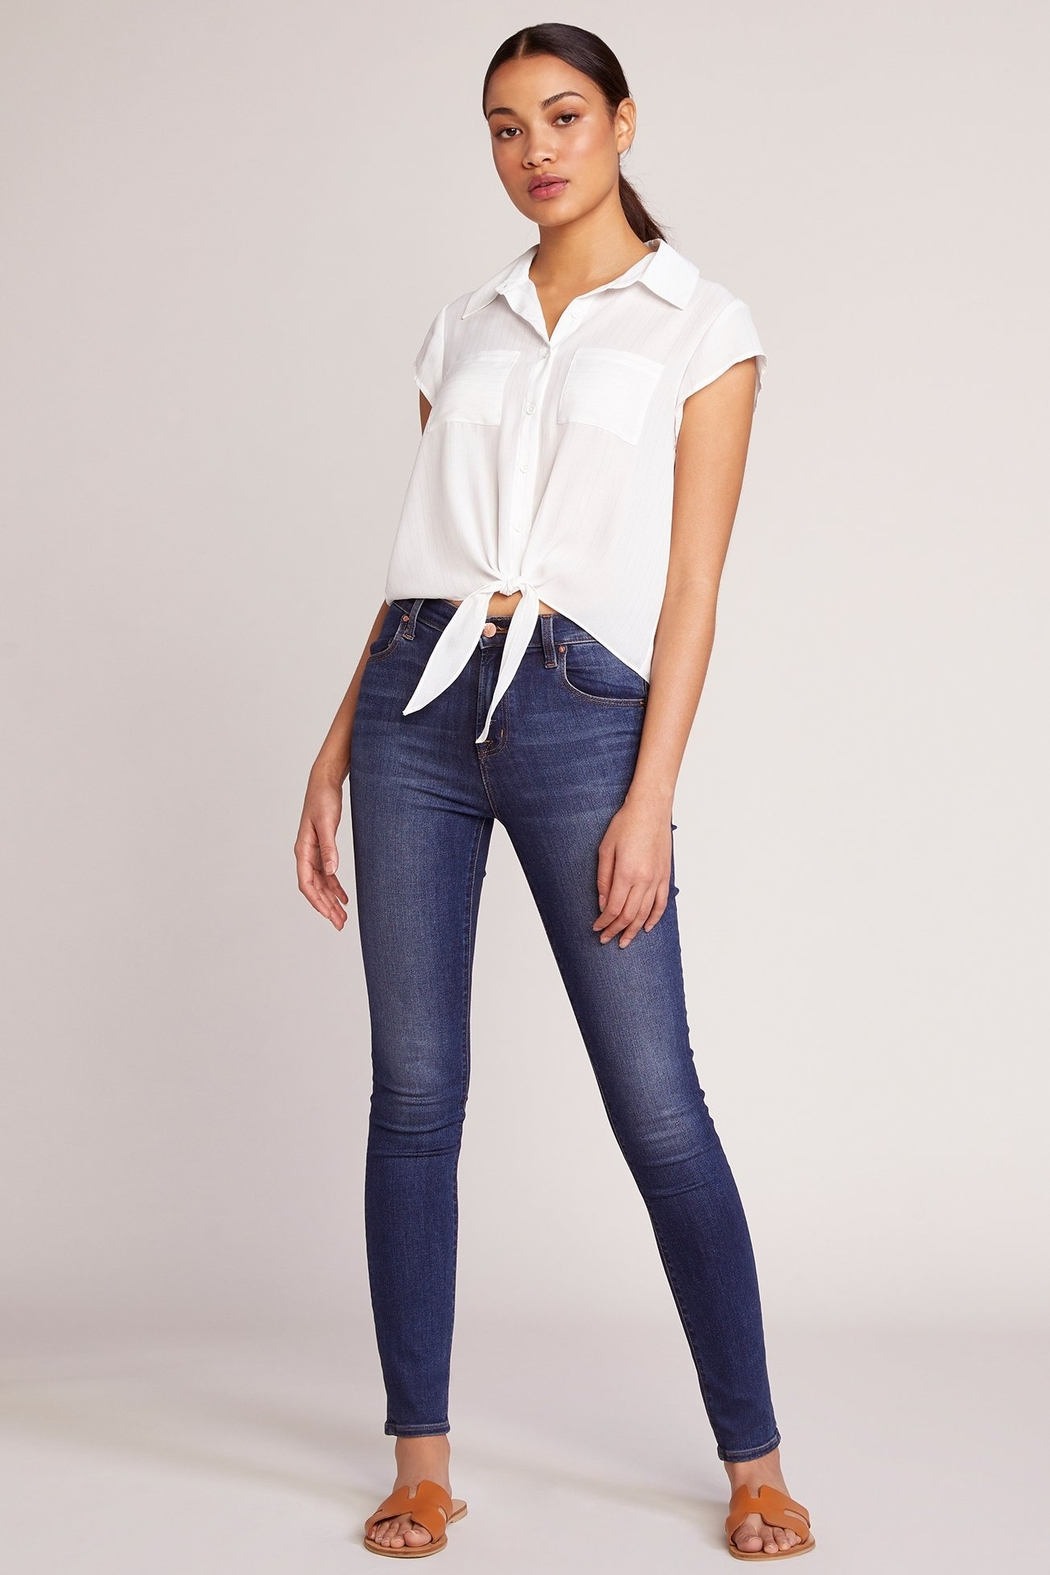 JACK DAKOTA All Lined Up Tie Blouse - Side Cropped Image